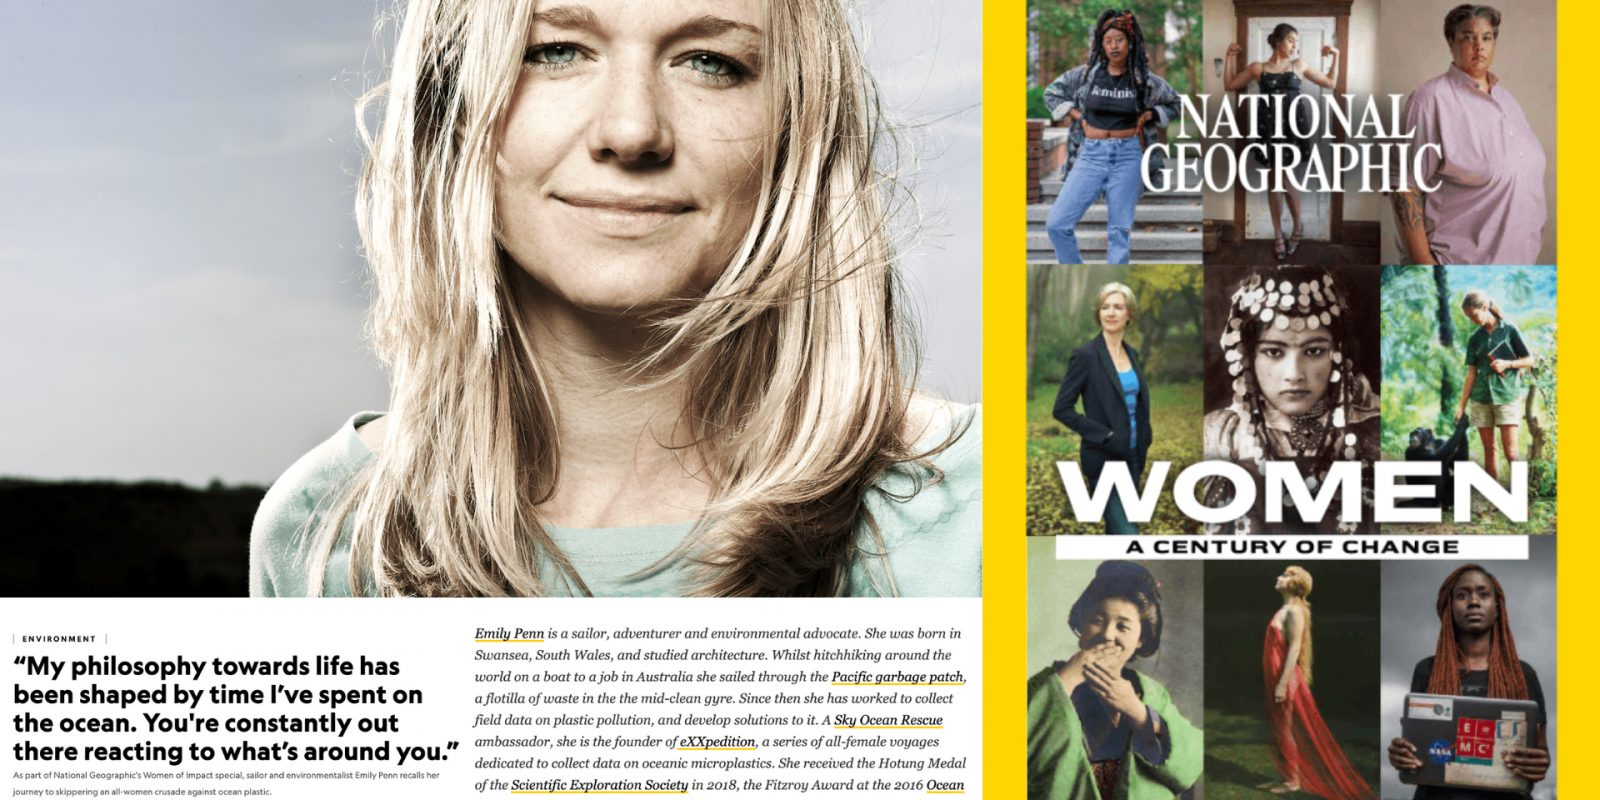 National Geographic eXXpedition Emily Penn _ women of impact